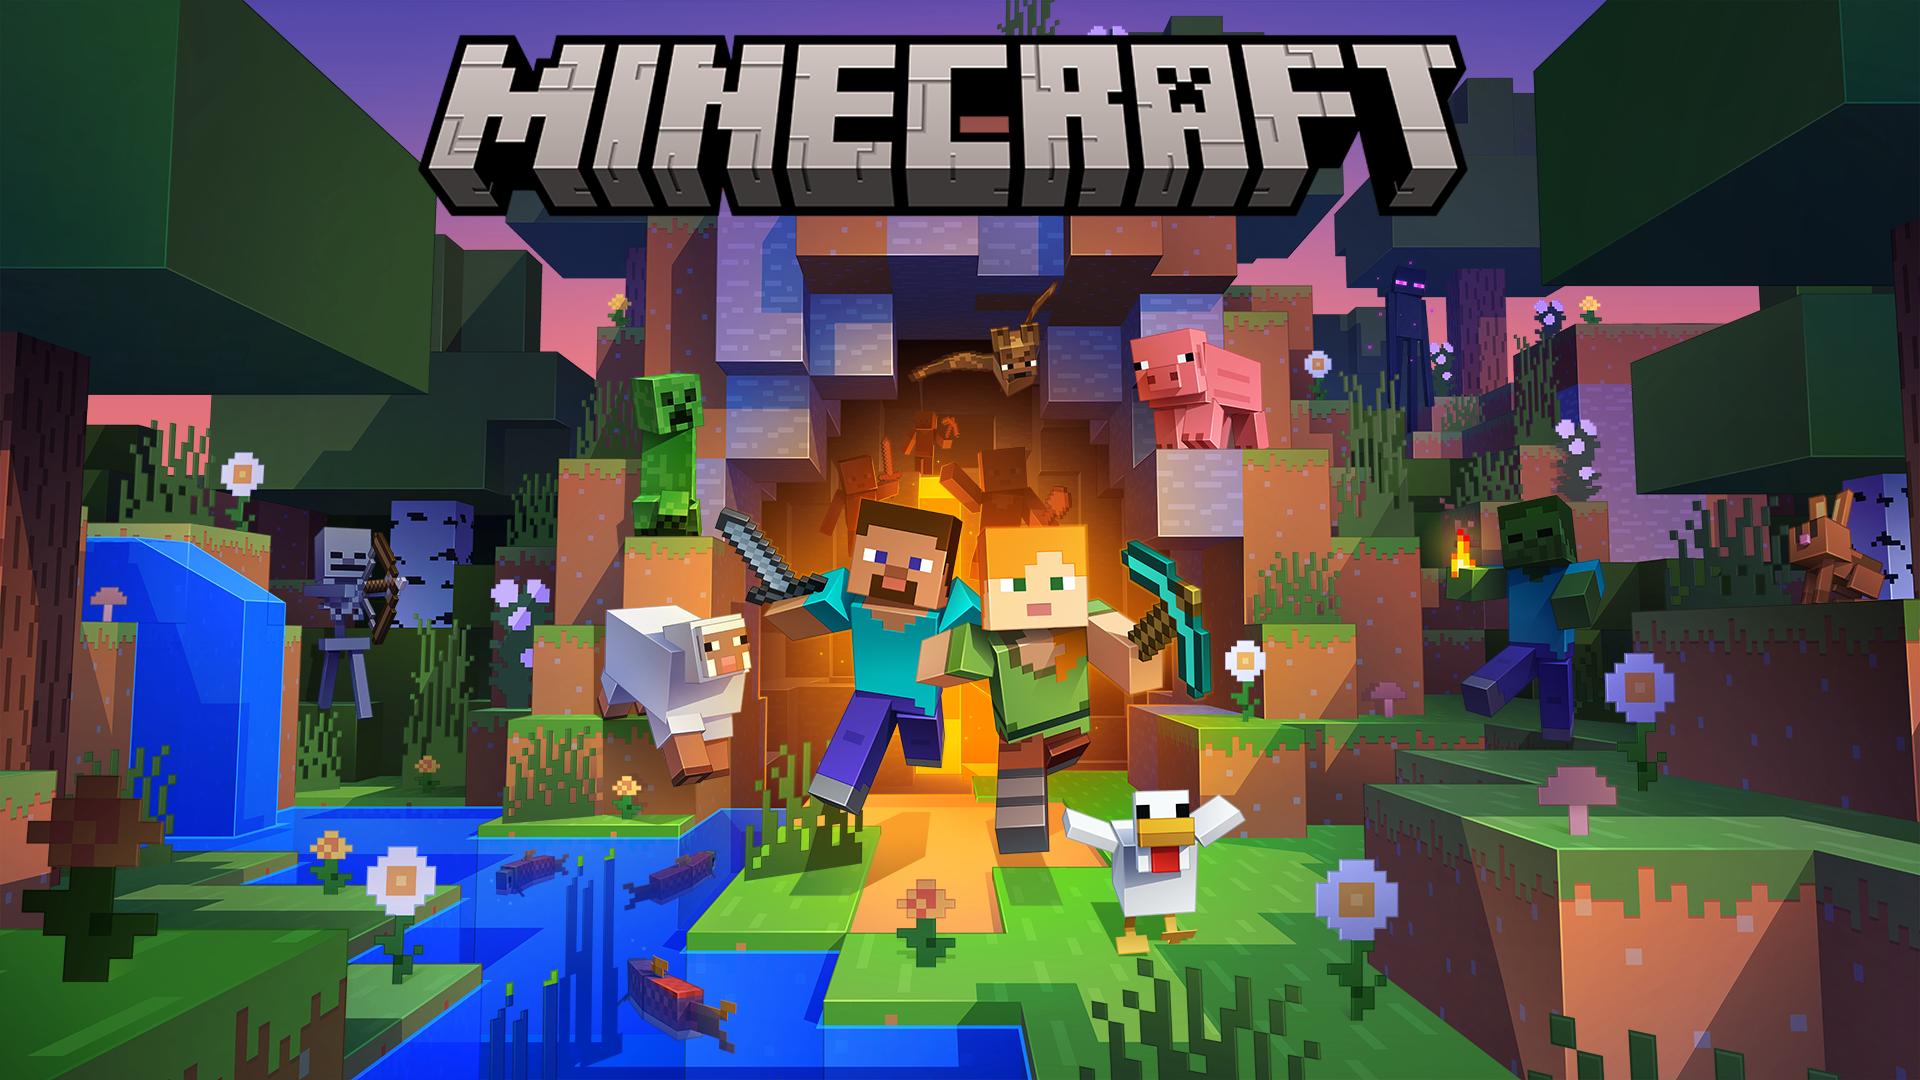 Coming November 2 to Xbox Game Pass for PC: Minecraft Java and Bedrock Editions